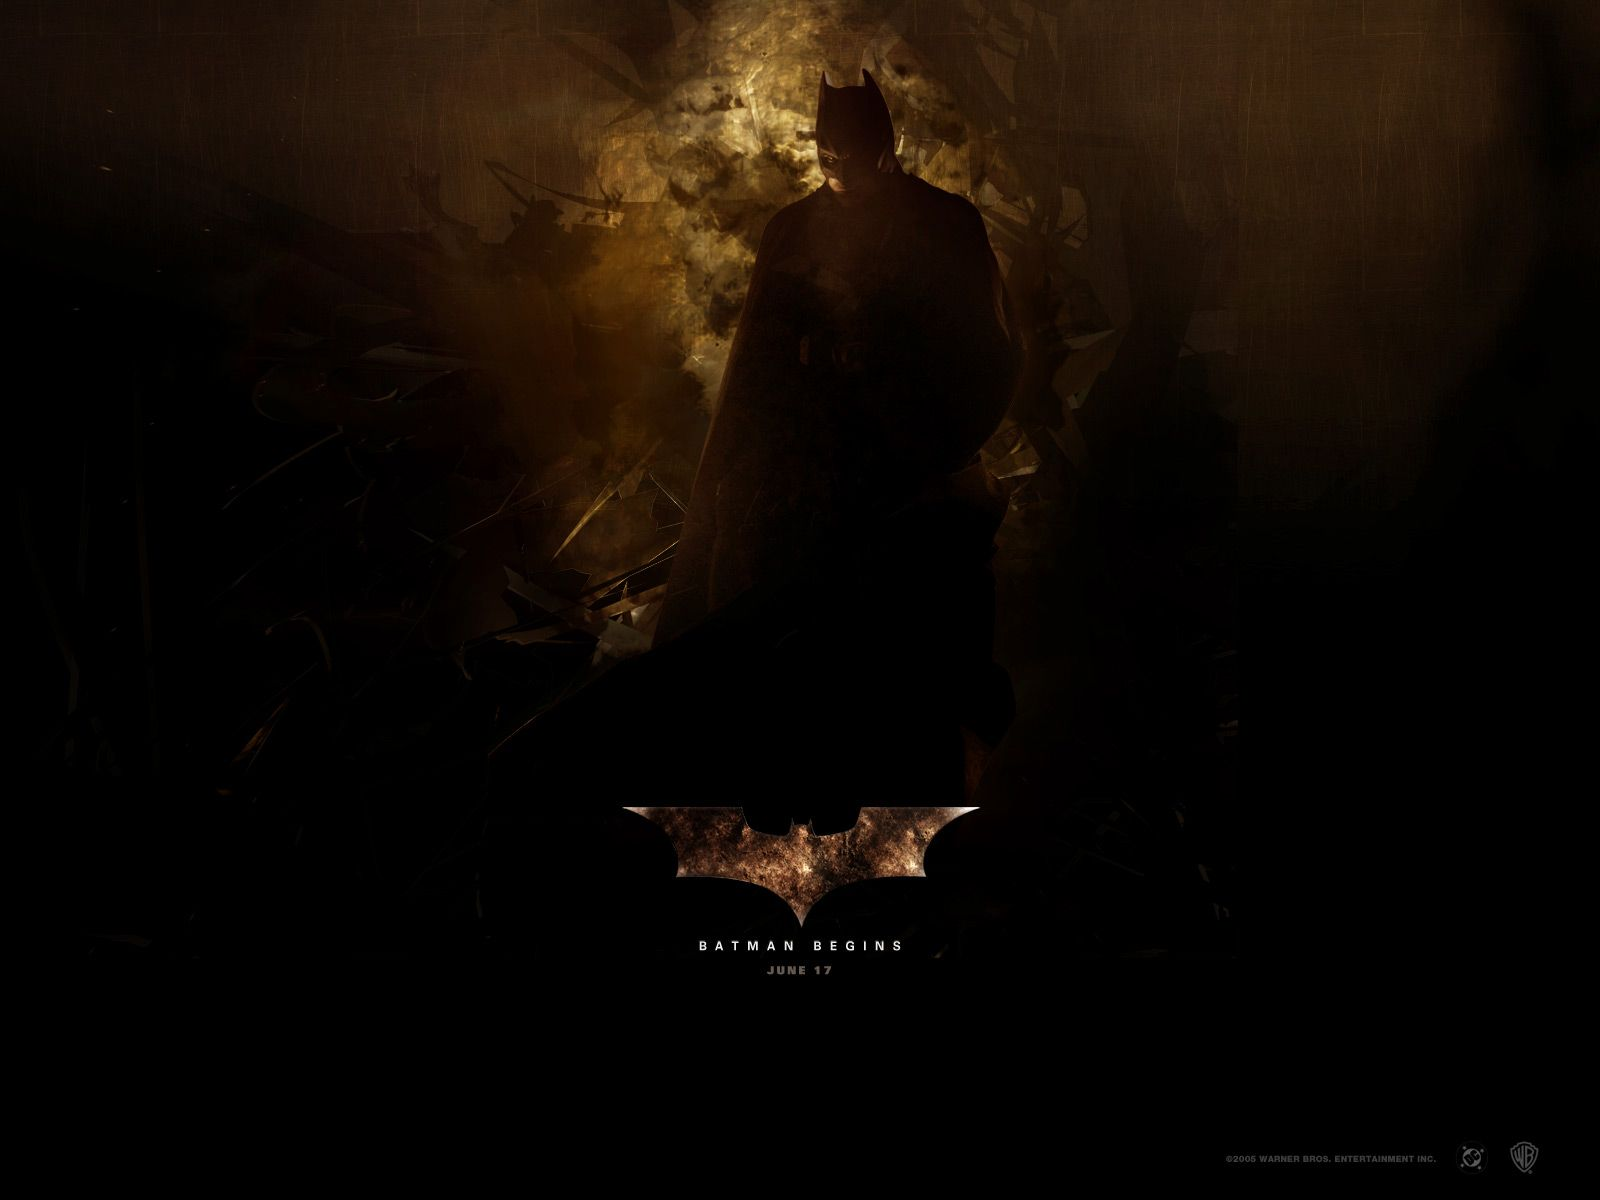 Batman Begins June 17 Poster Wallpaper 1600x1200